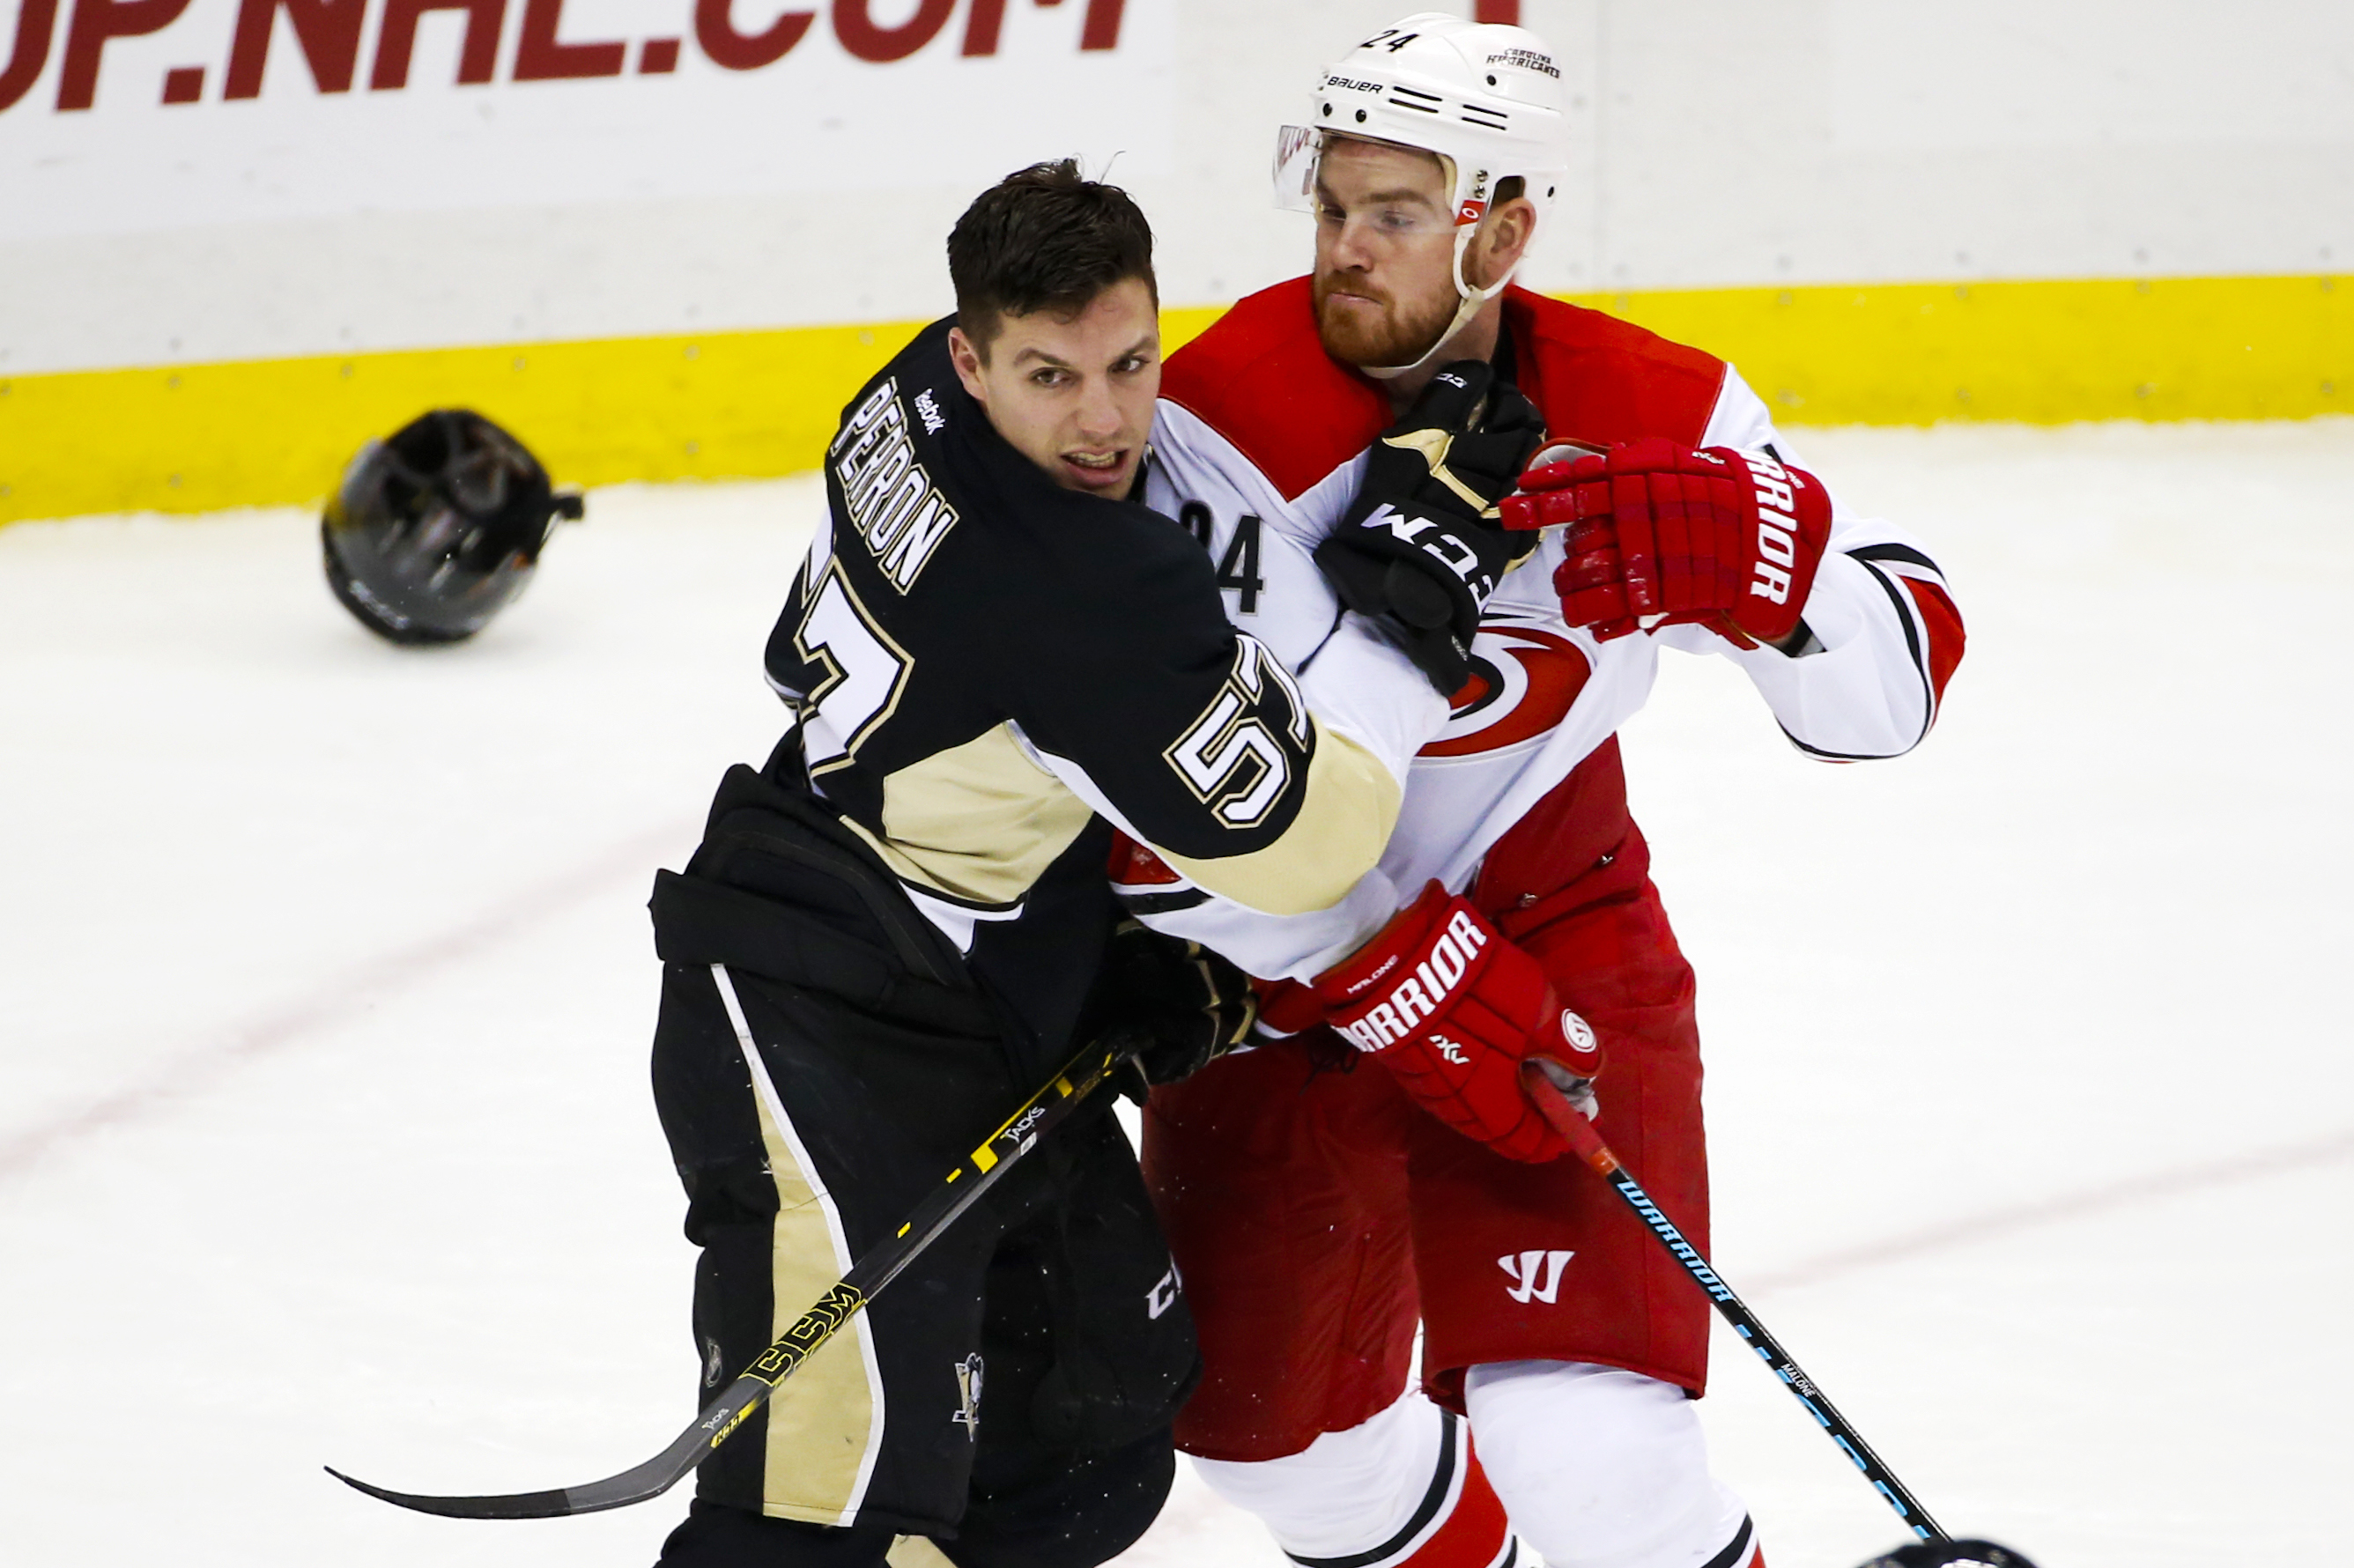 Pittsburgh Penguins' David Perron (57) and Carolina Hurricanes' Brad Malone (24) battle for position during the first period of an NHL hockey game in Pittsburgh, Saturday, Dec. 19, 2015. (AP Photo/Gene J. Puskar)